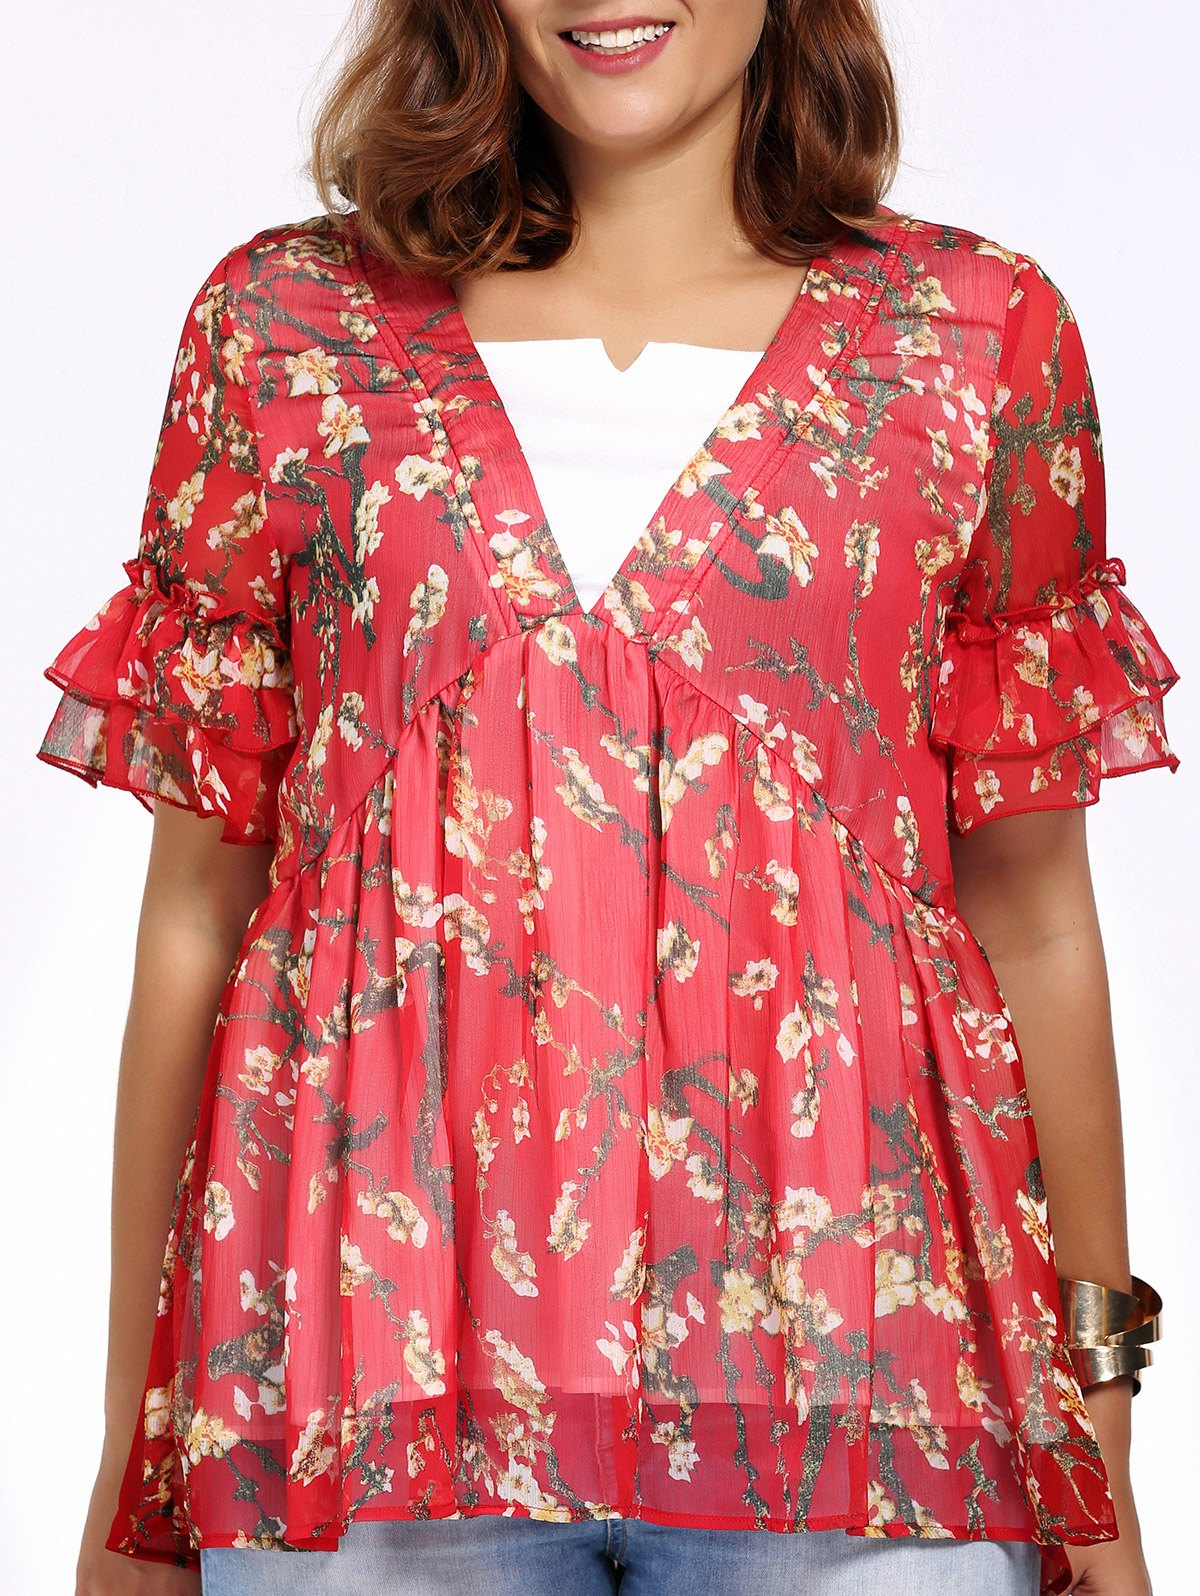 Sweet Plus Size Floral Print V Neck Faux Twinset Women's Blouse - RED 4XL